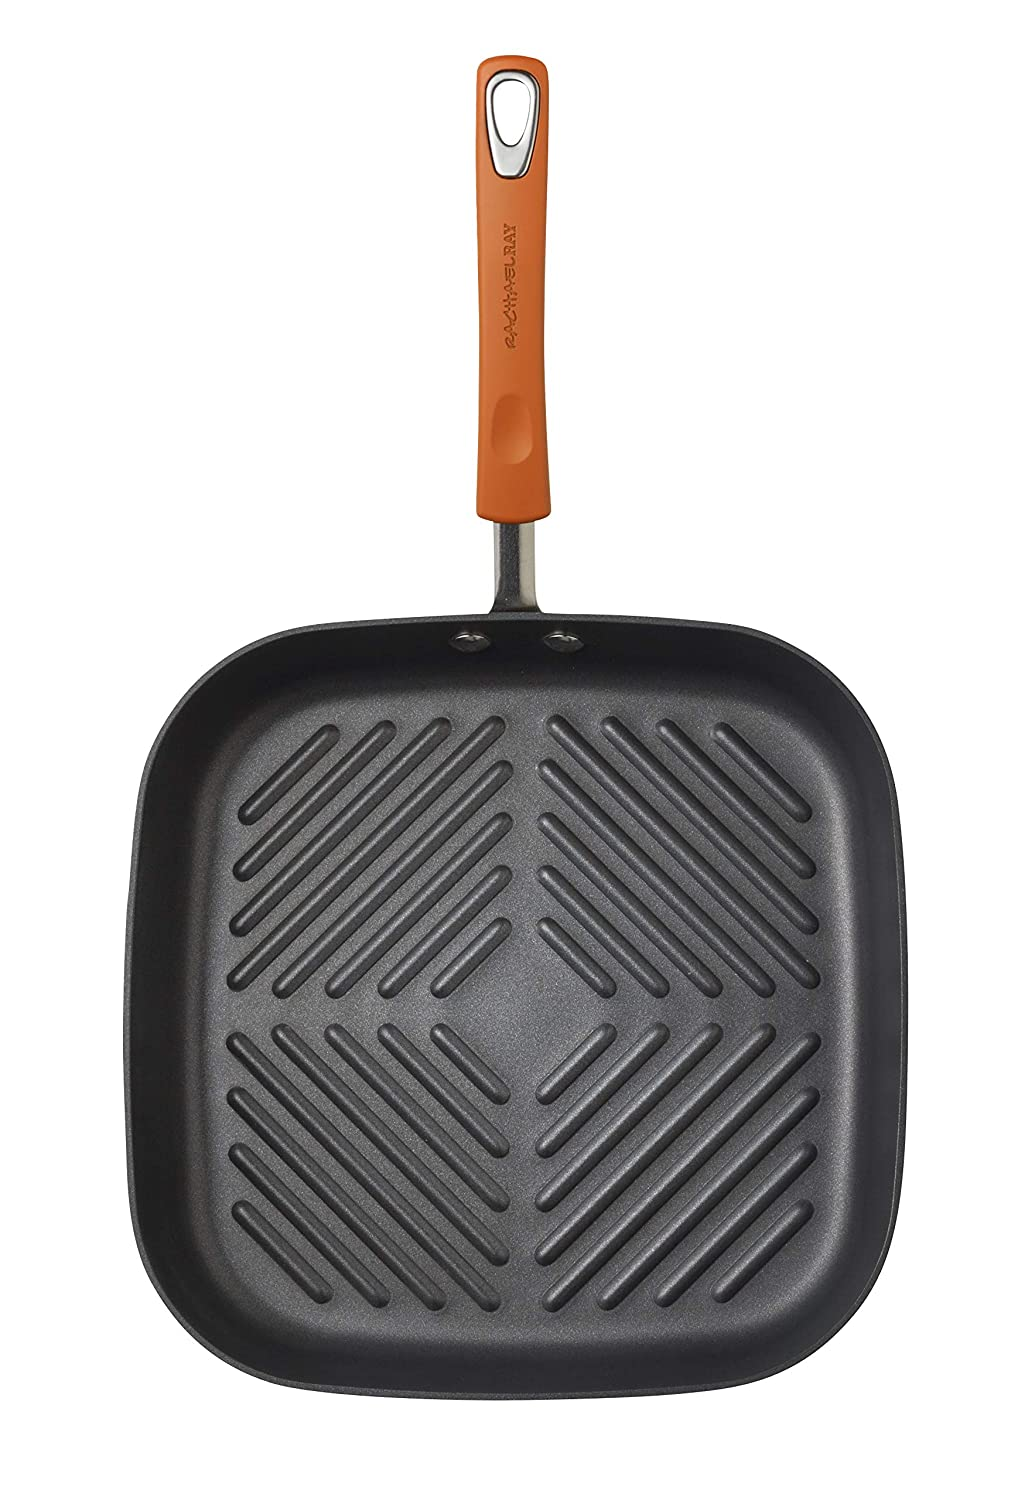 Rachael Ray Hard Anodized II Nonstick Dishwasher Safe 11-Inch Deep Square Grill Pan Orange